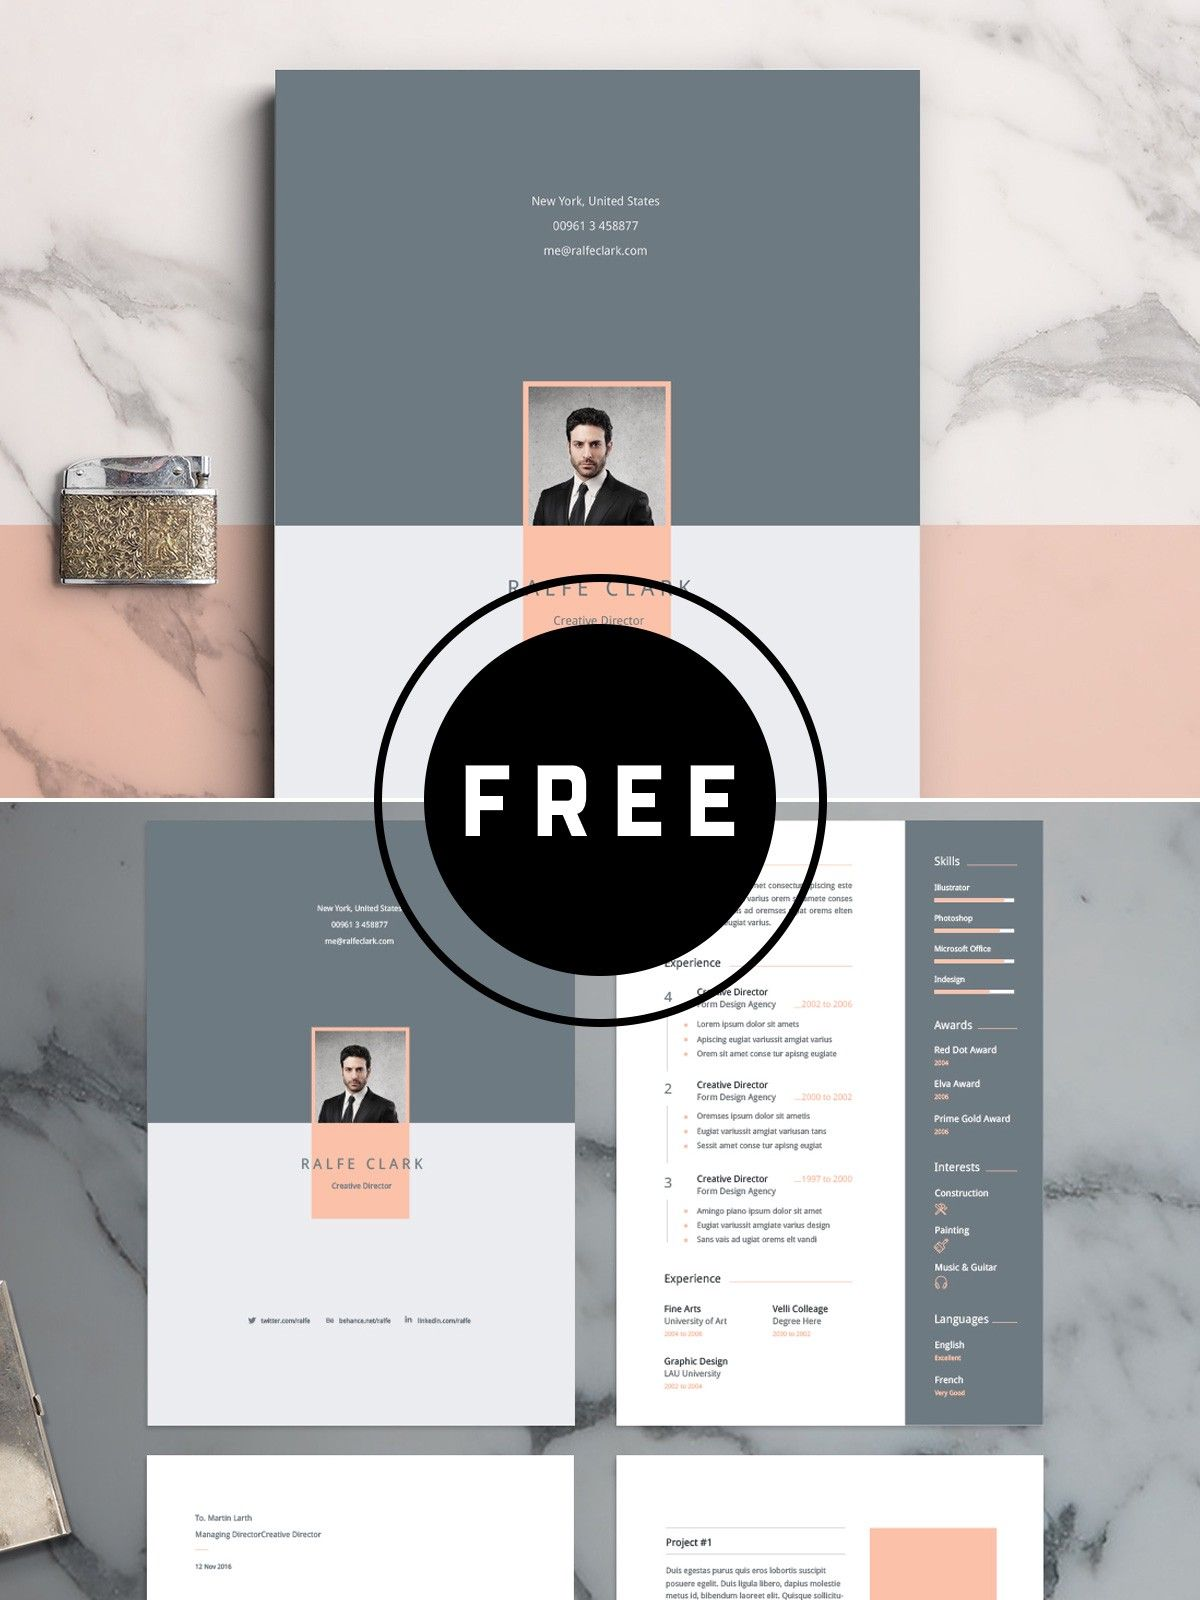 100 Free Best Resume Templates For 2019 - Best resume template, Resume template free, Resume templates, Simple resume template, Infographic resume template, Resume template - These beautiful resume templates are handpicked and will make your designs stand out from tons of other resumes  These are perfect and ideal for designers and artists  Free Resume PSD Template that…